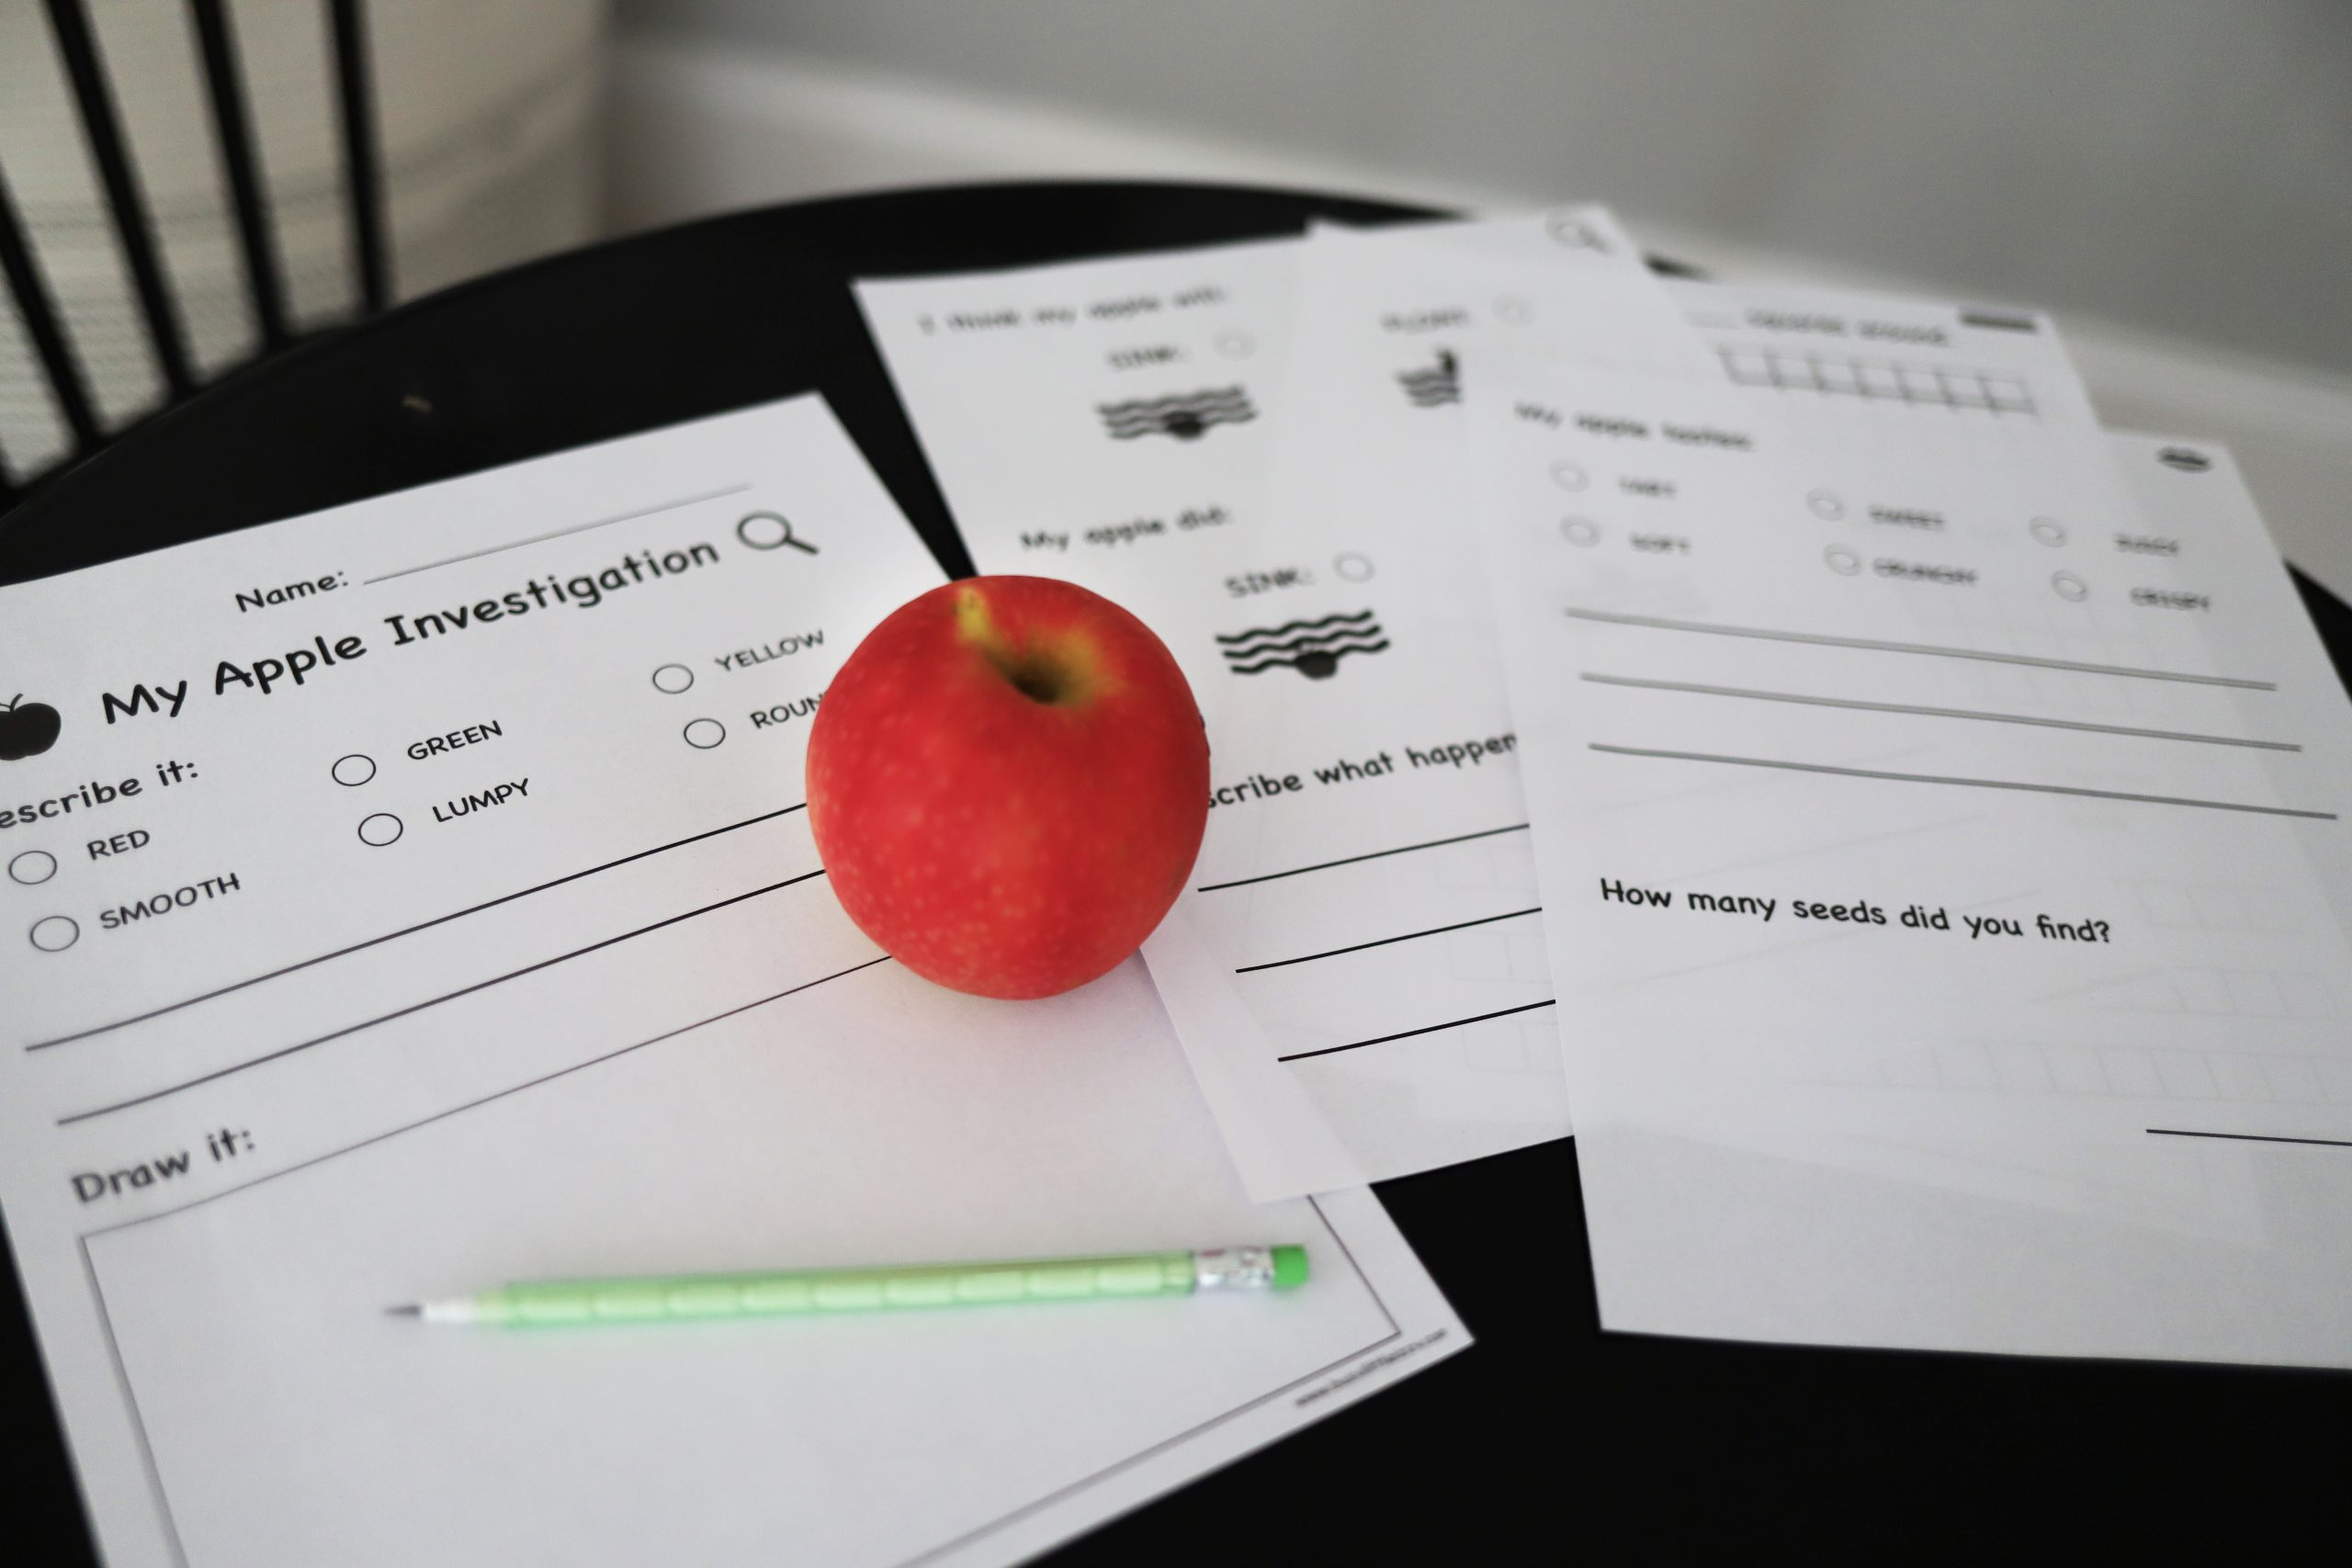 Apple Investigation Activities